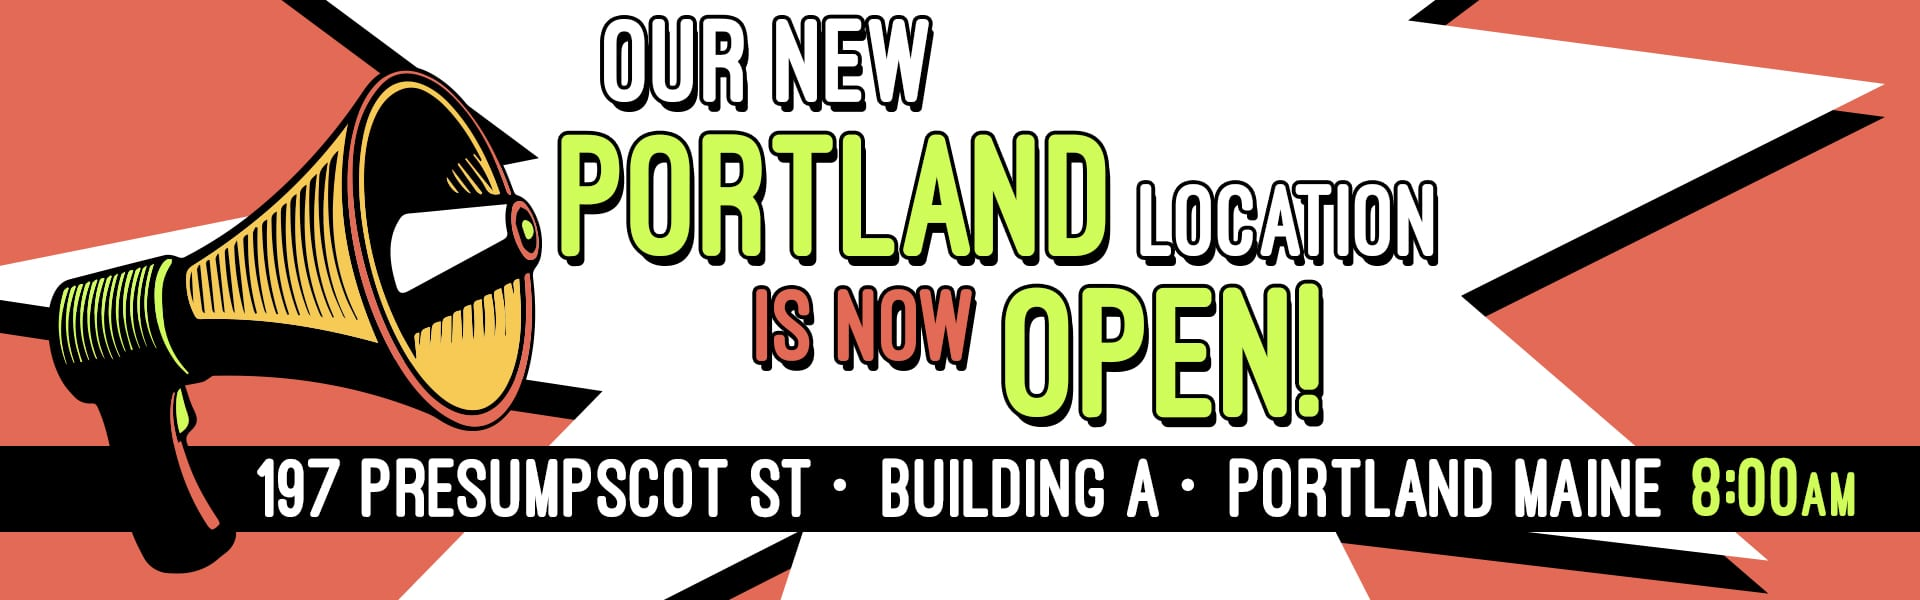 New Portland Store Location Open Now!